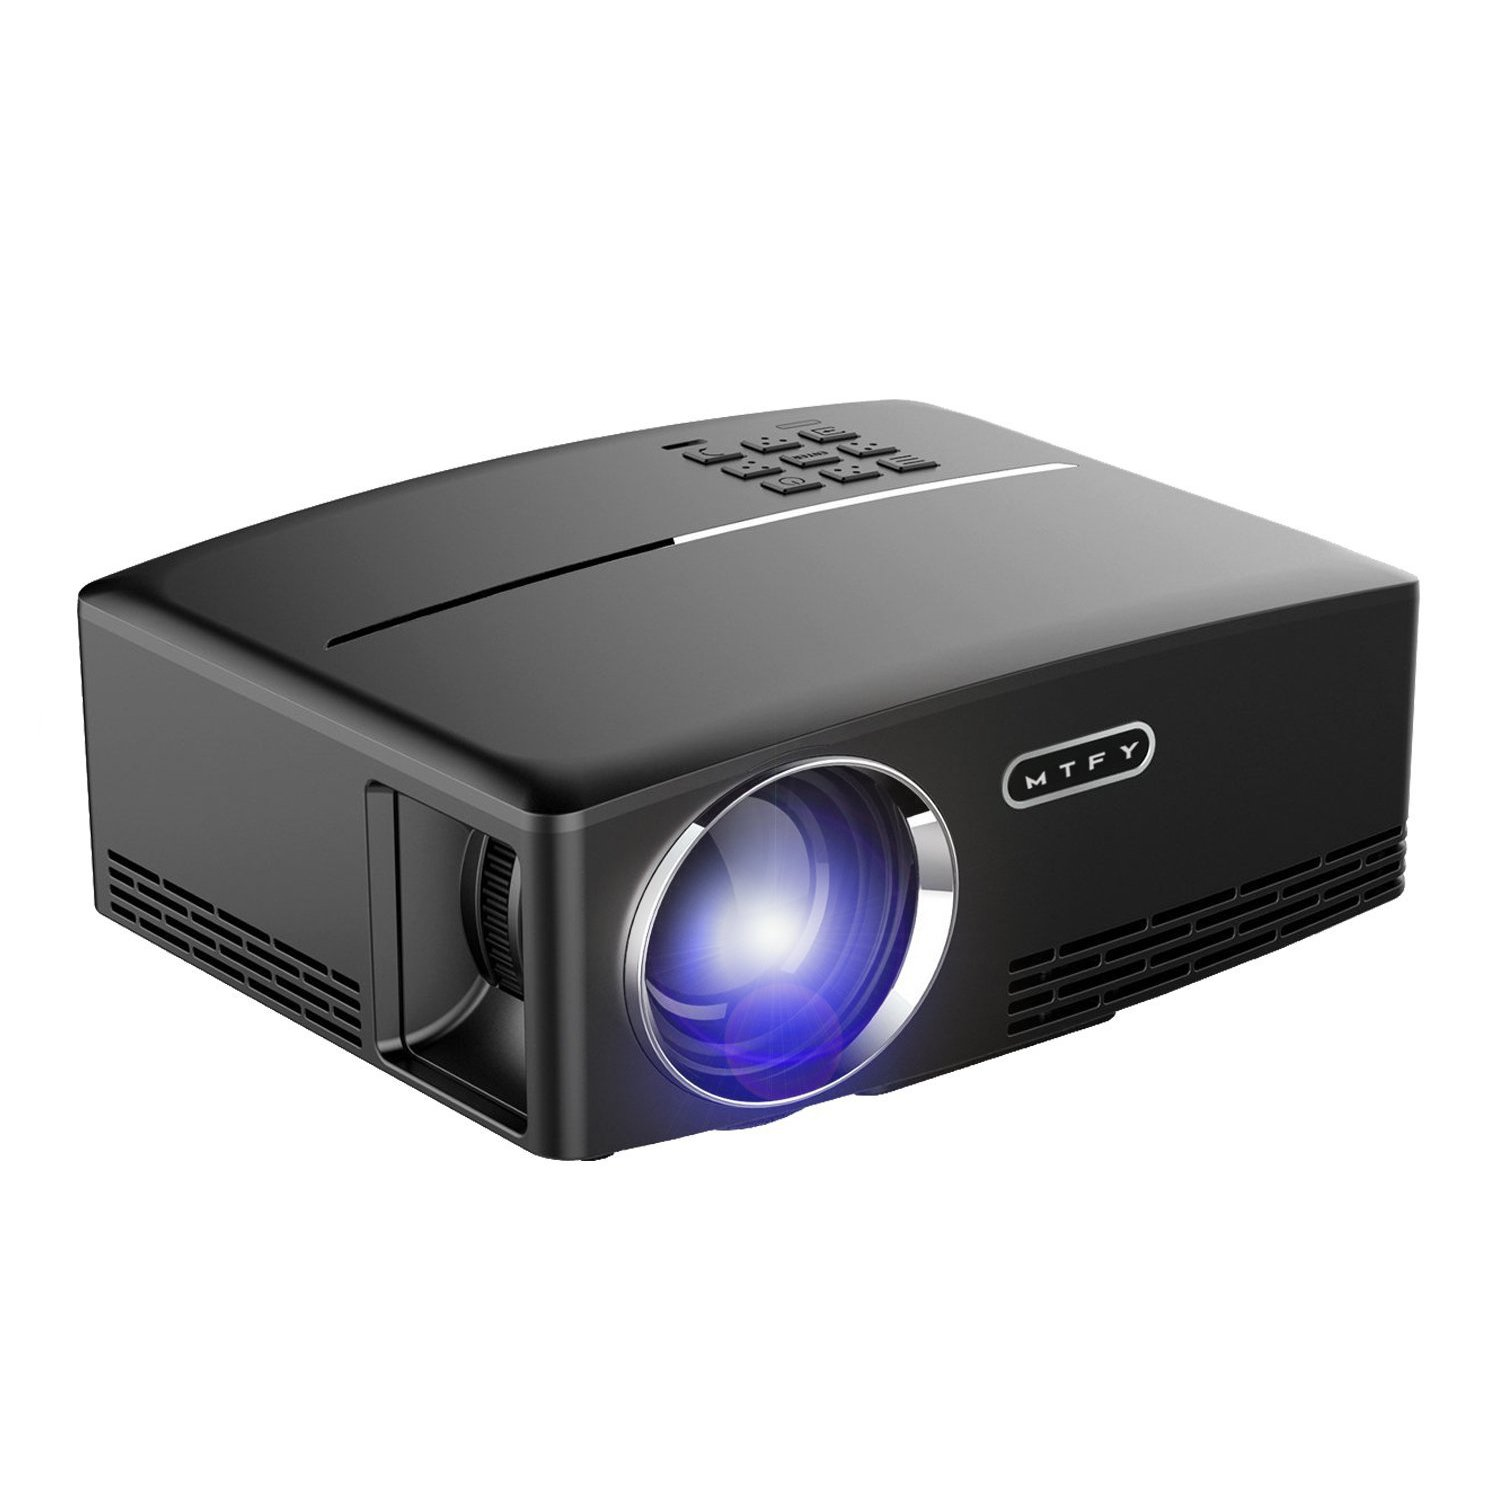 MTFY Projector-Mini Portable Video Projector-1800 Lumens LED Home Theater Projector-Support HD 1080P HDMI USB VGA AV for PC/Laptop/DVD/TV /Video/Photo/Game/Movie